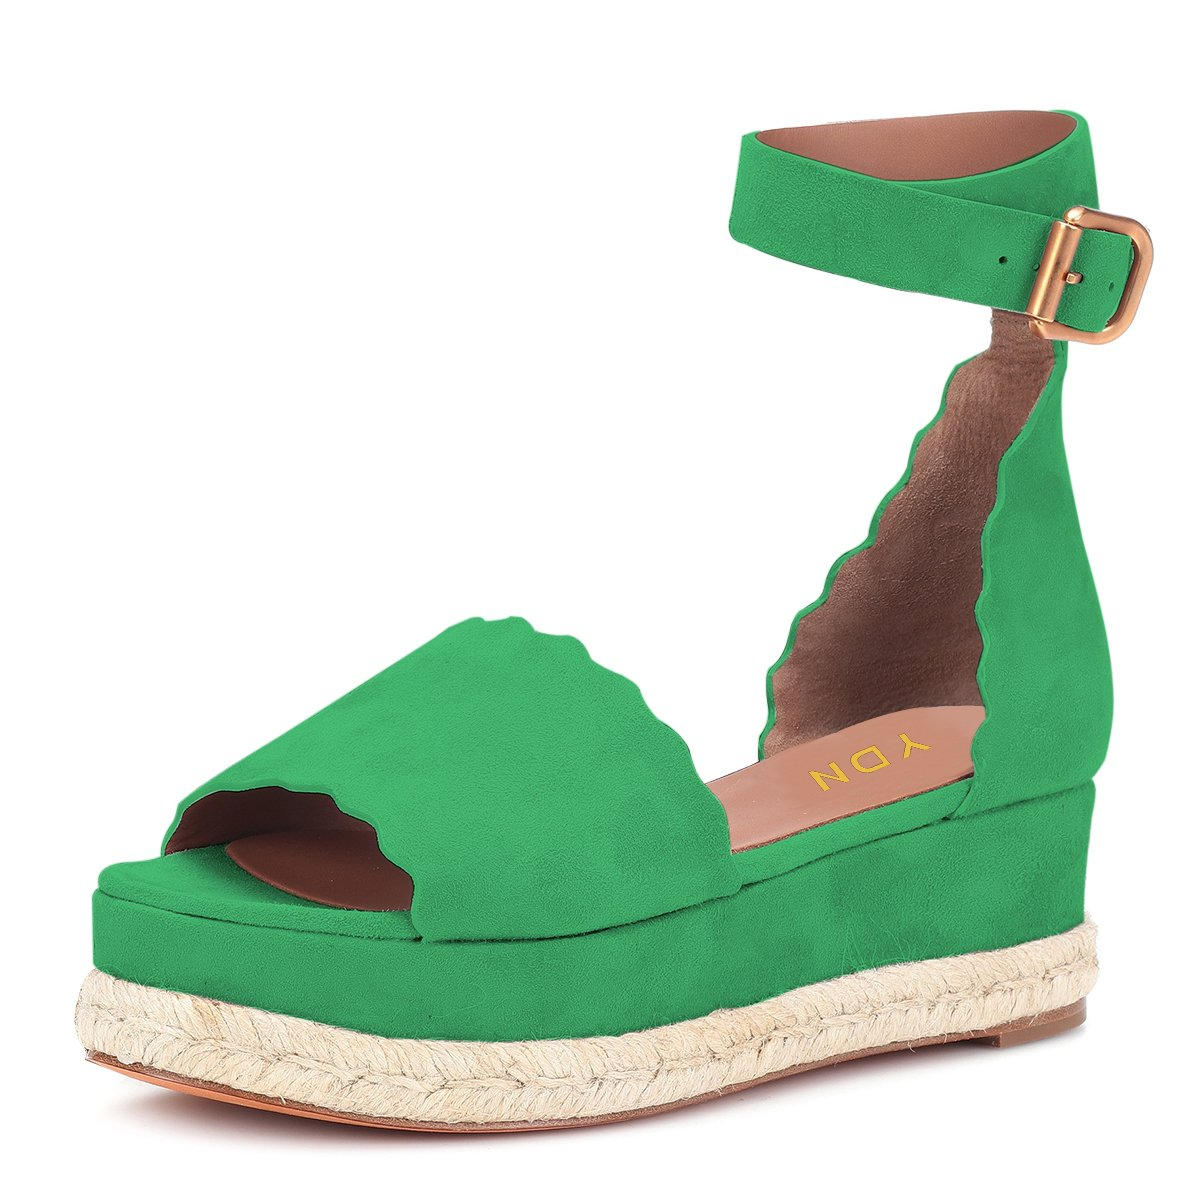 YDN Women Espadrille Peep Toe Ankle Straps Wedge Sandals Low Heels Platform Shoes with Buckle B07DCNG86V 12 M US|Green